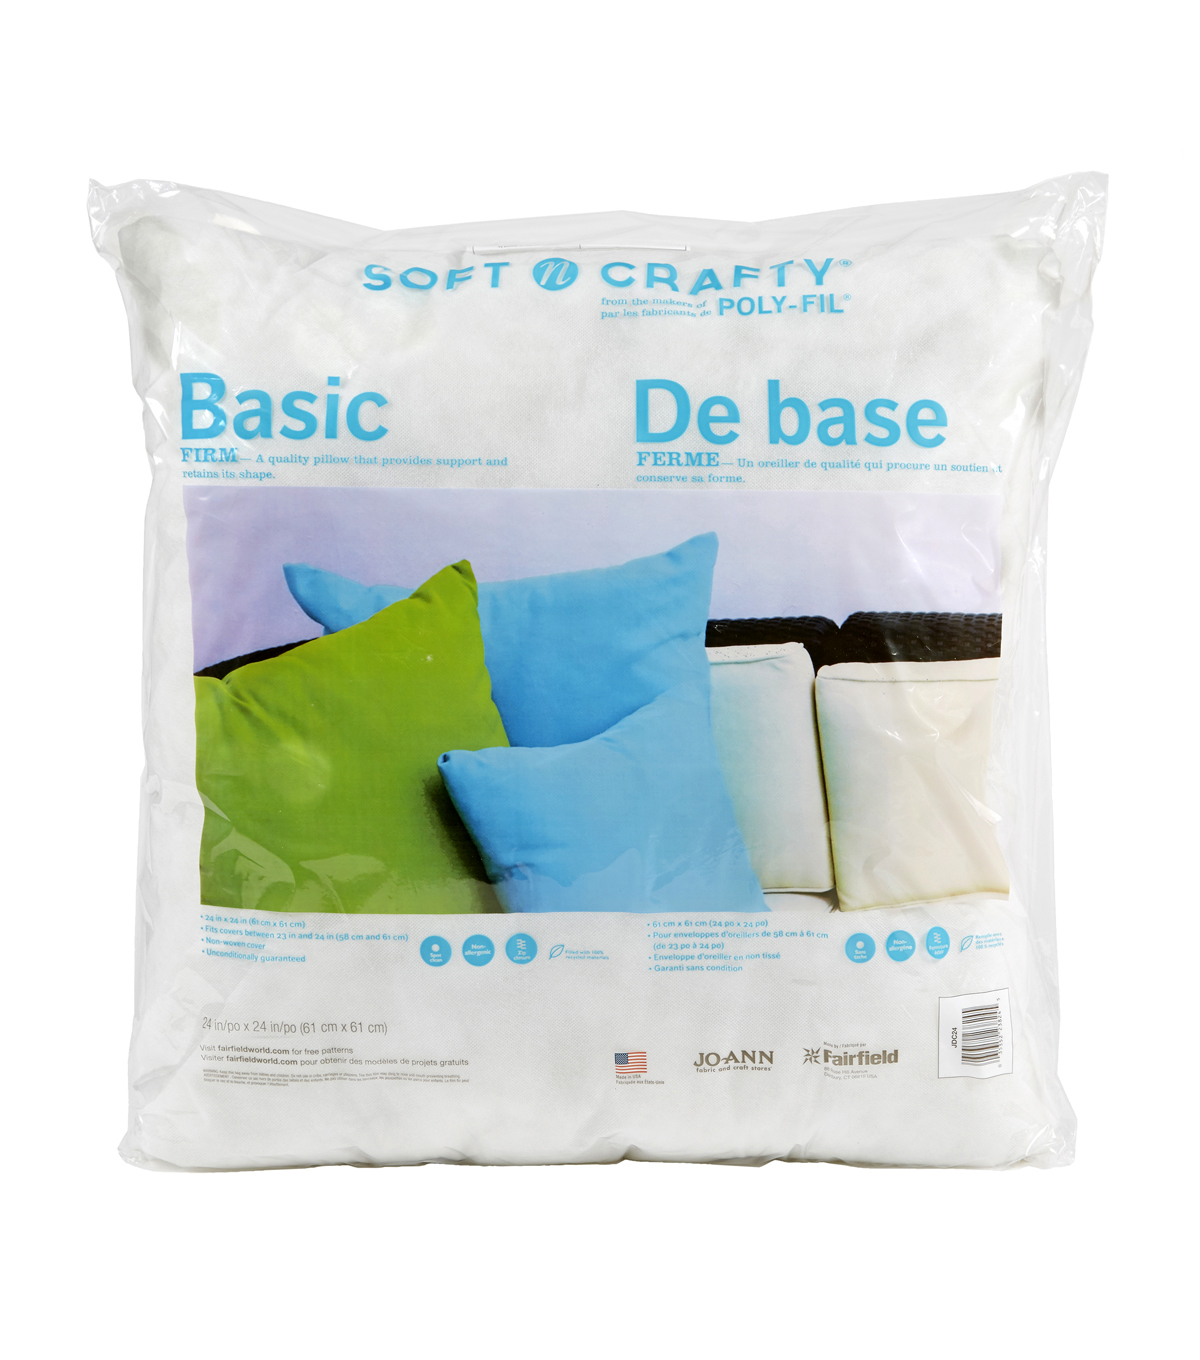 Soft N Crafty Basic 24\u0022 x 24\u0022 Pillow